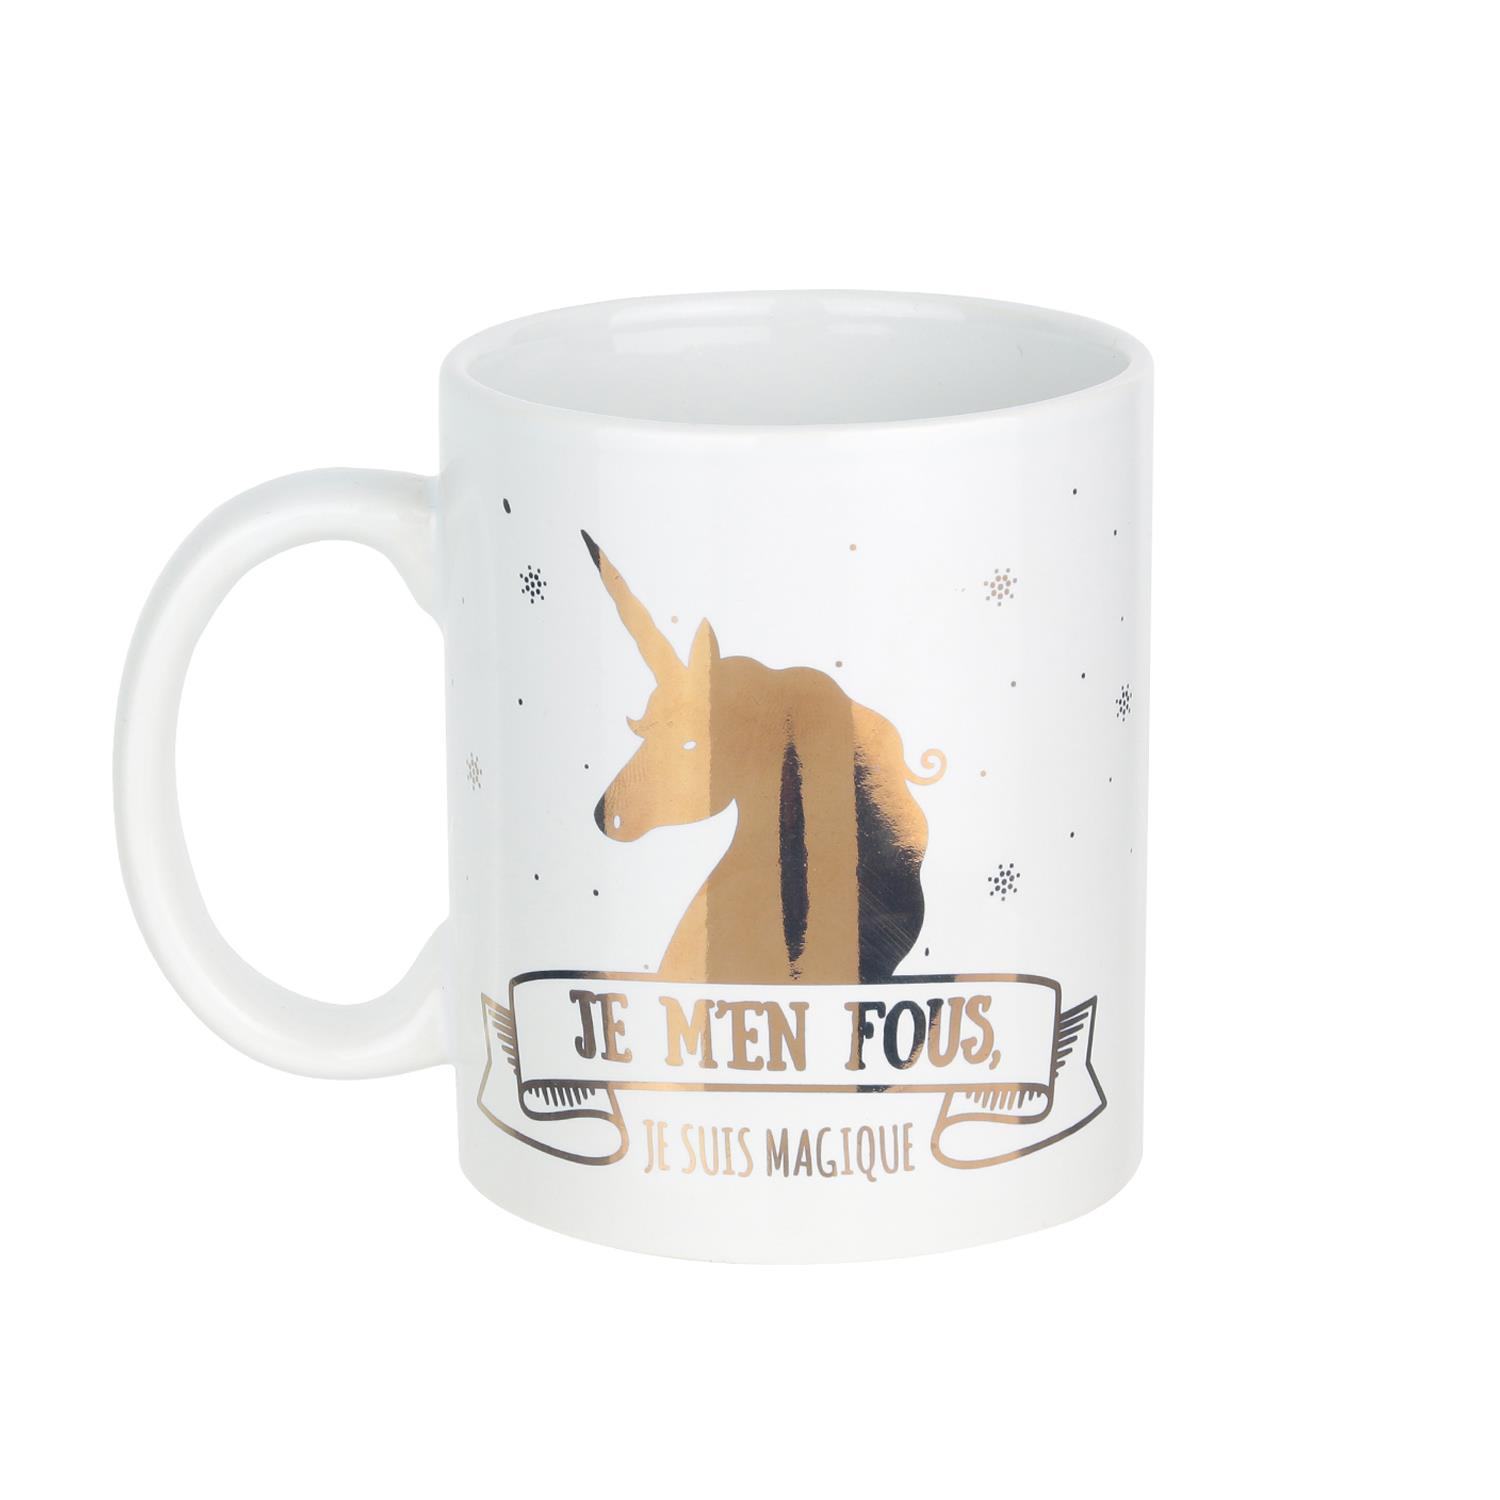 2 Mugs Sur Page Txperience Archives NvOynwPm80